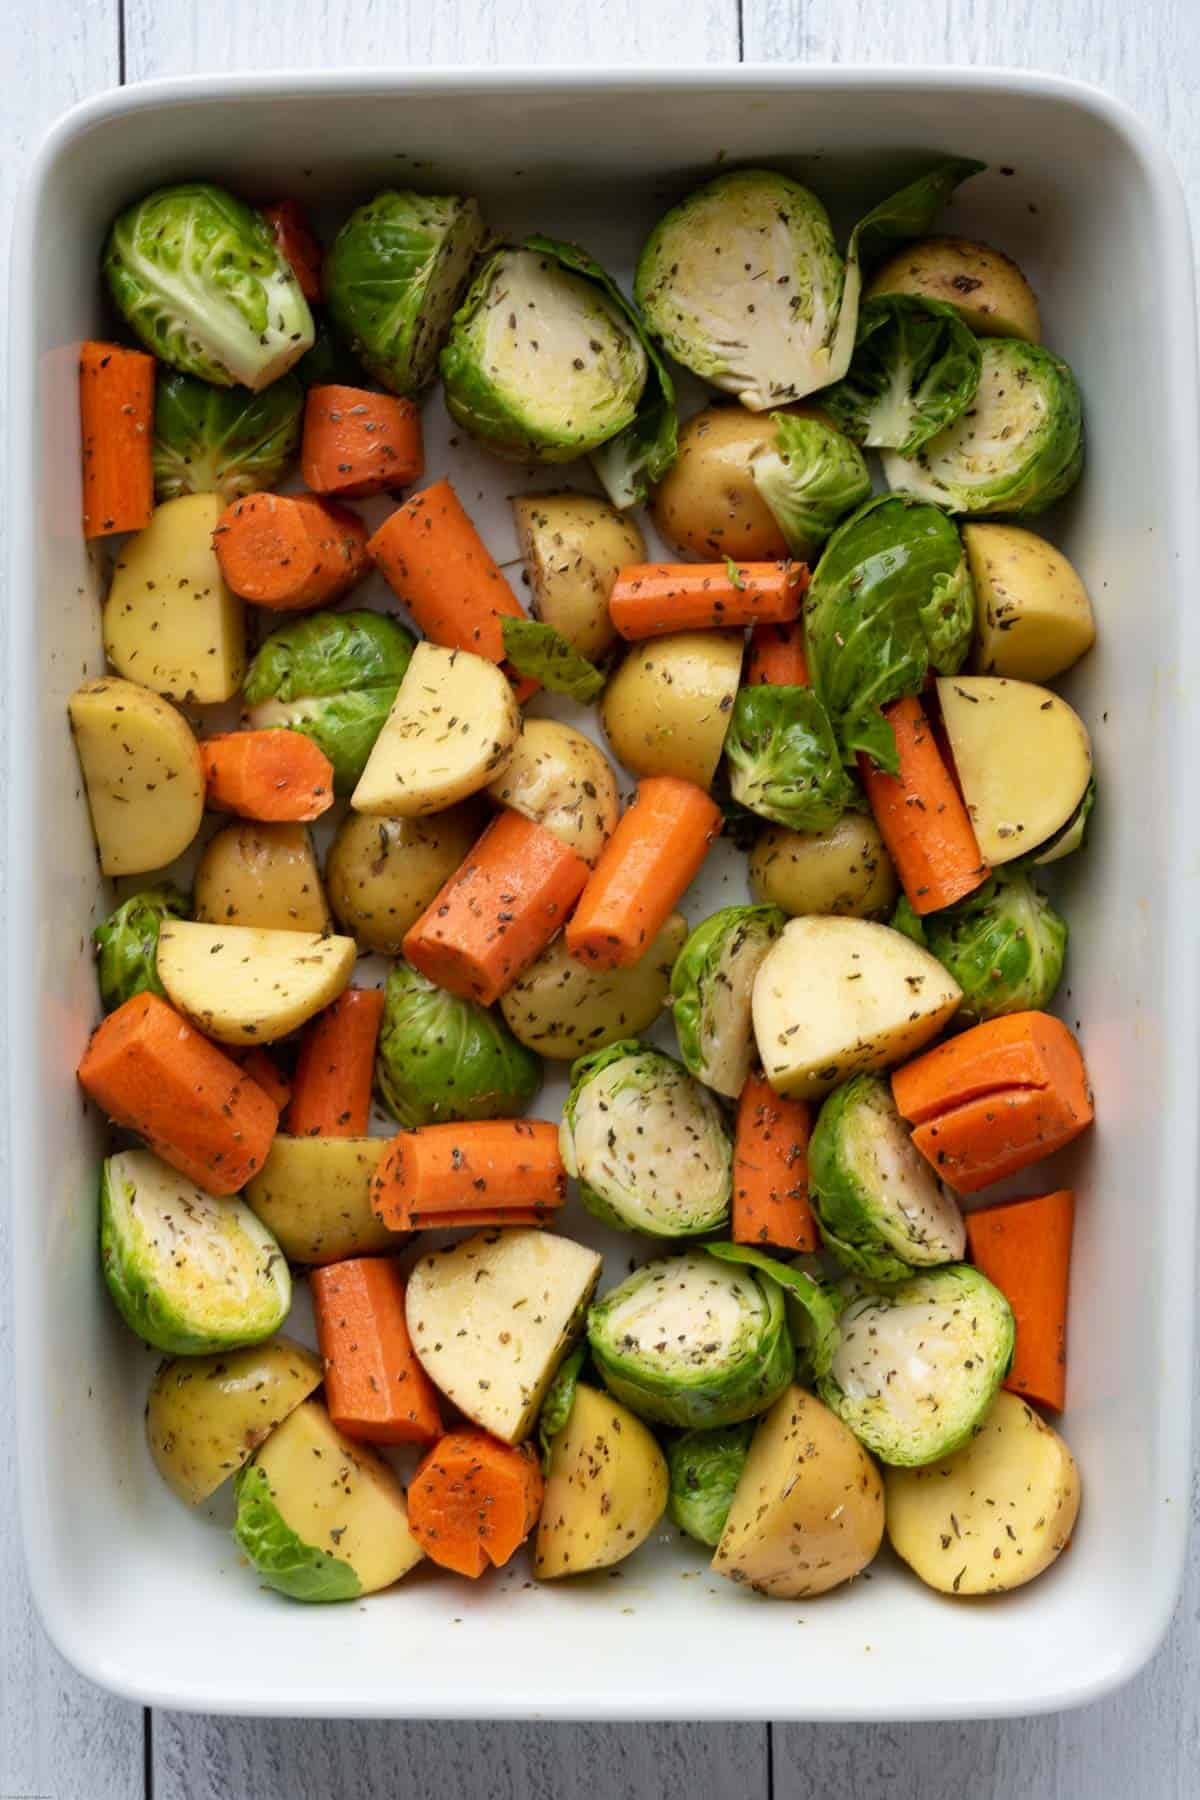 Roasted Brussels sprouts, carrots, and potatoes in a white casserole dish.